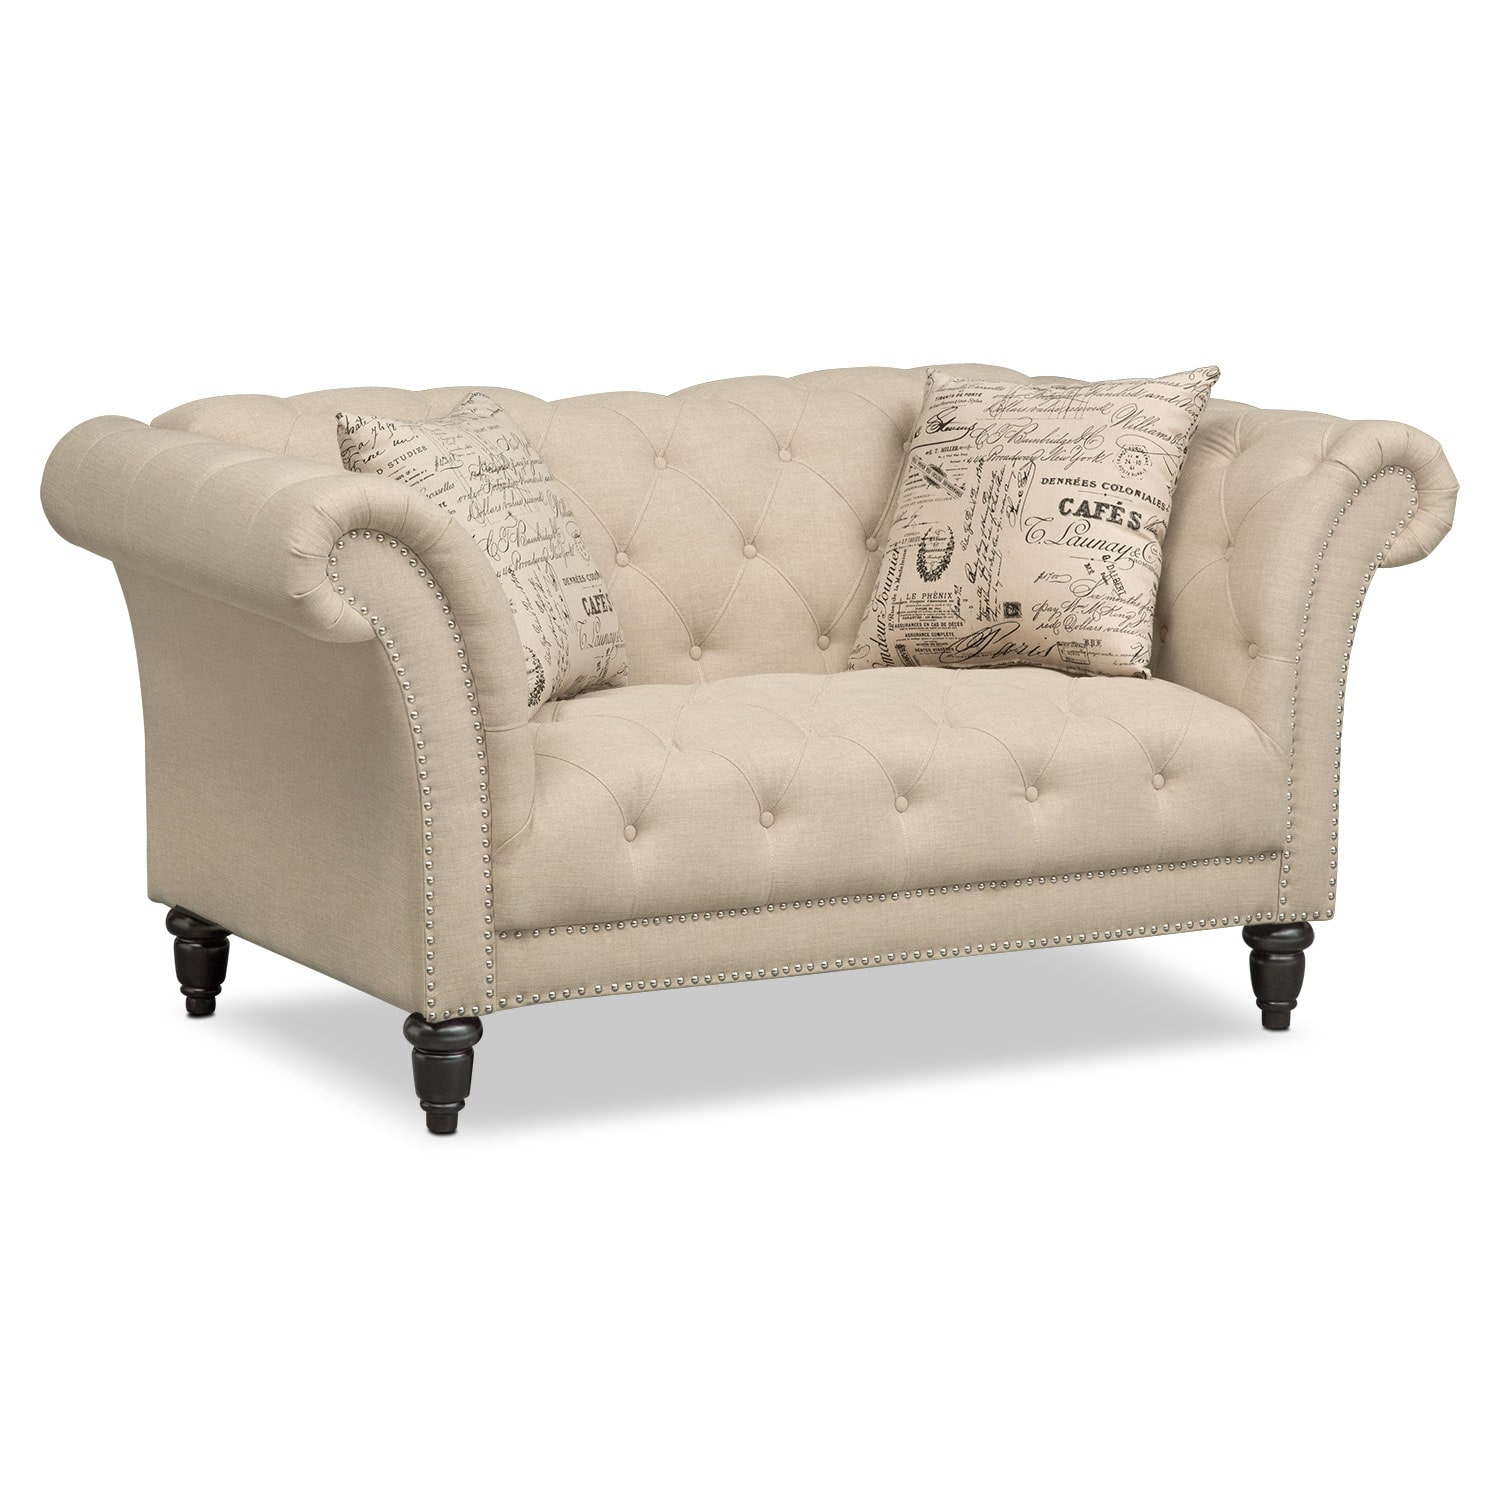 love making chair images pottery barn charleston and a half slipcover marisol loveseat beige american signature furniture